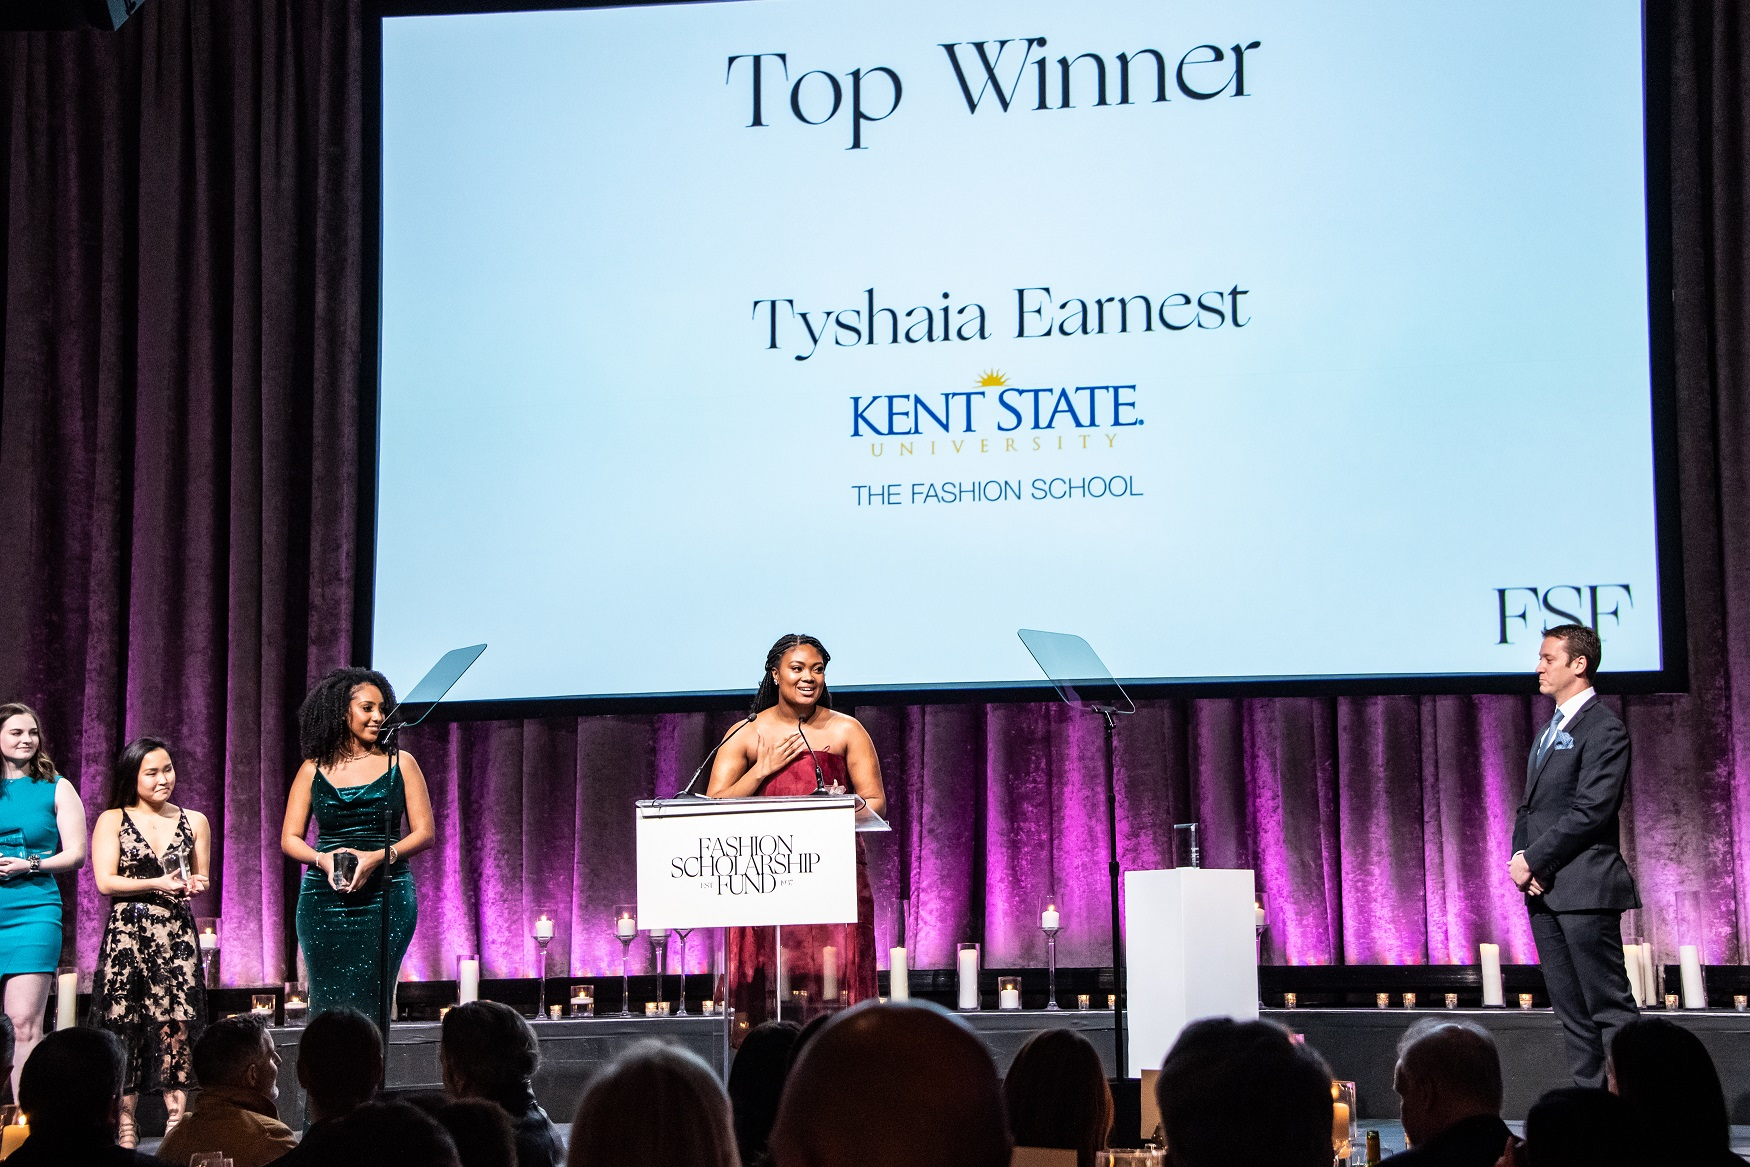 Kent State University Fashion School student Tyshaia Earnest wins the top award at the 2020 Fashion Scholarship Fund Gala in New York City. (Photo courtesy of YMA Fashion Scholarship Fund)